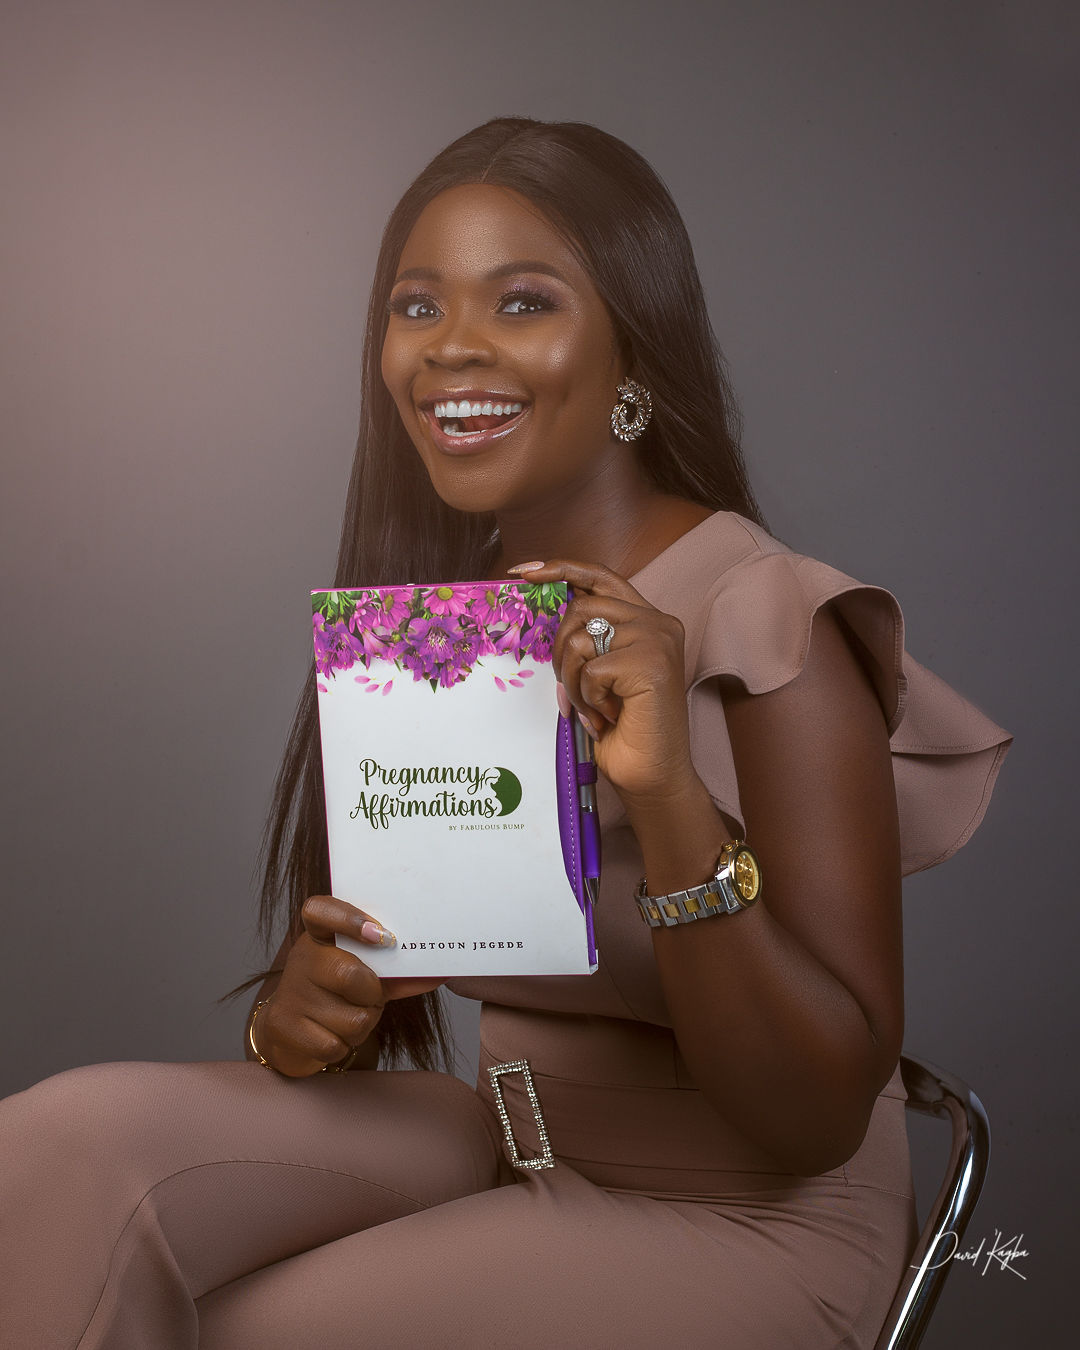 Pregnancy Affirmations Journal Adetoun Jegede